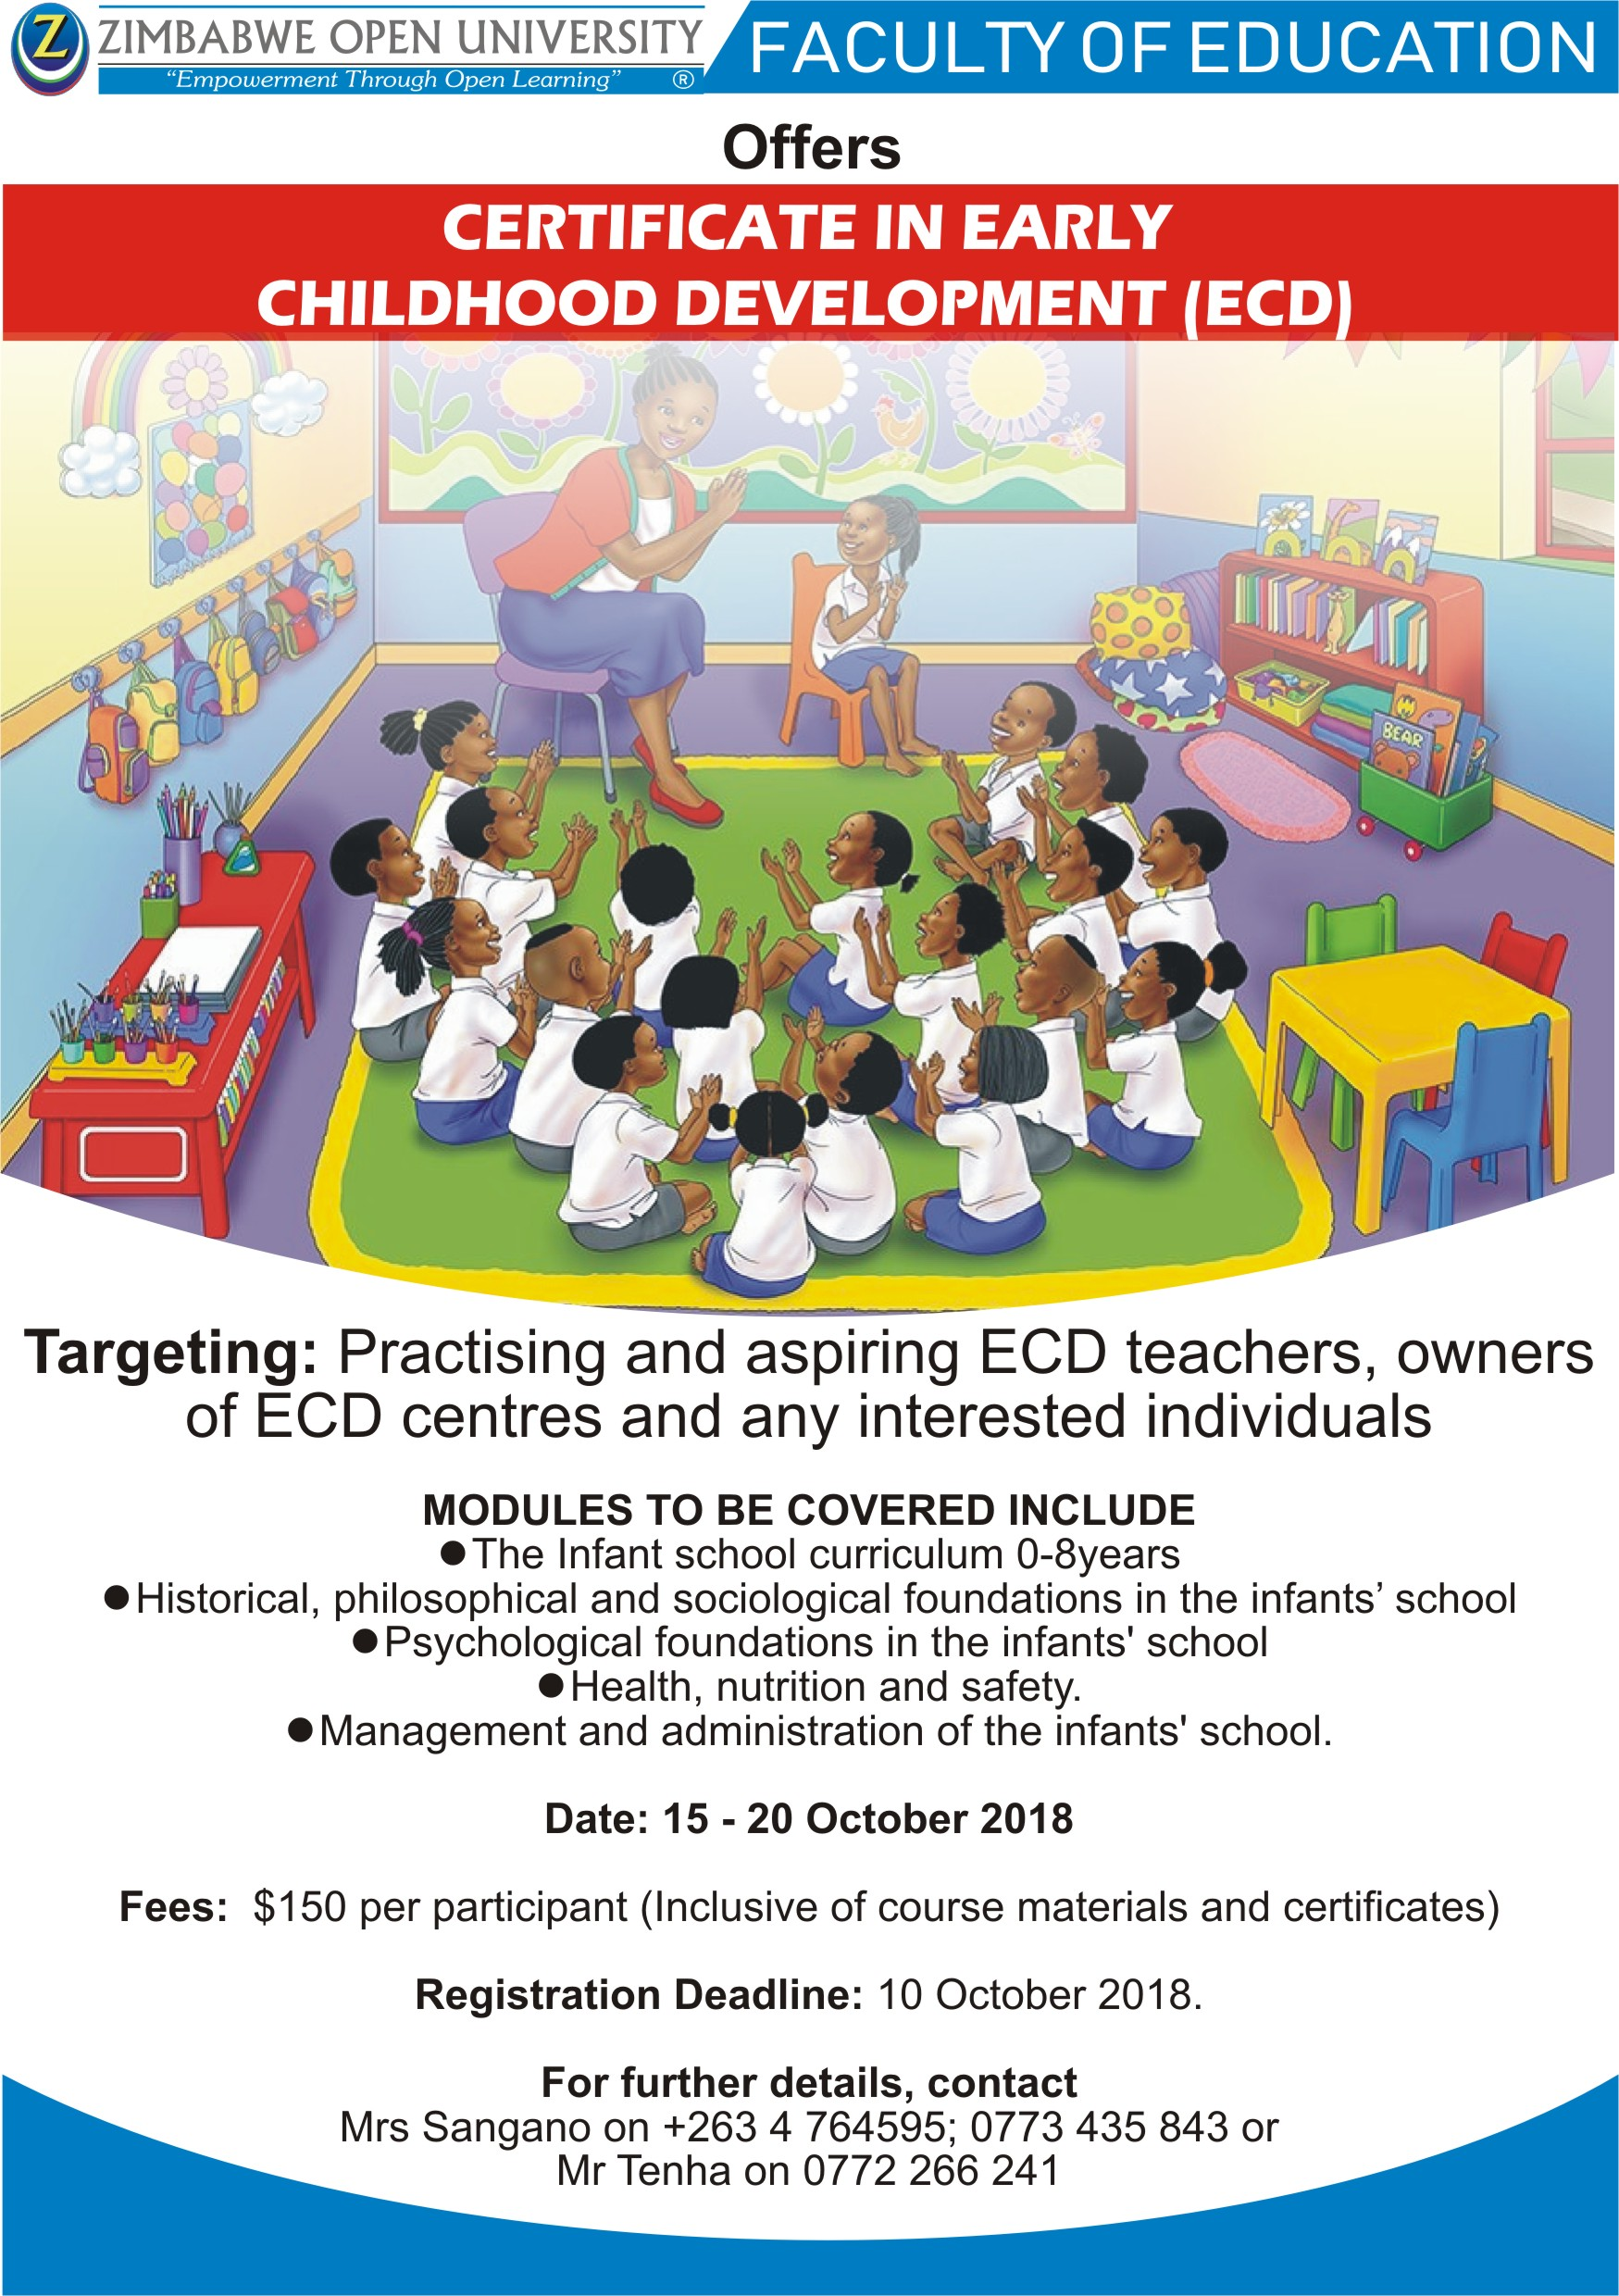 Certificate In Early Childhood Development Ecd Zimbabwe Open